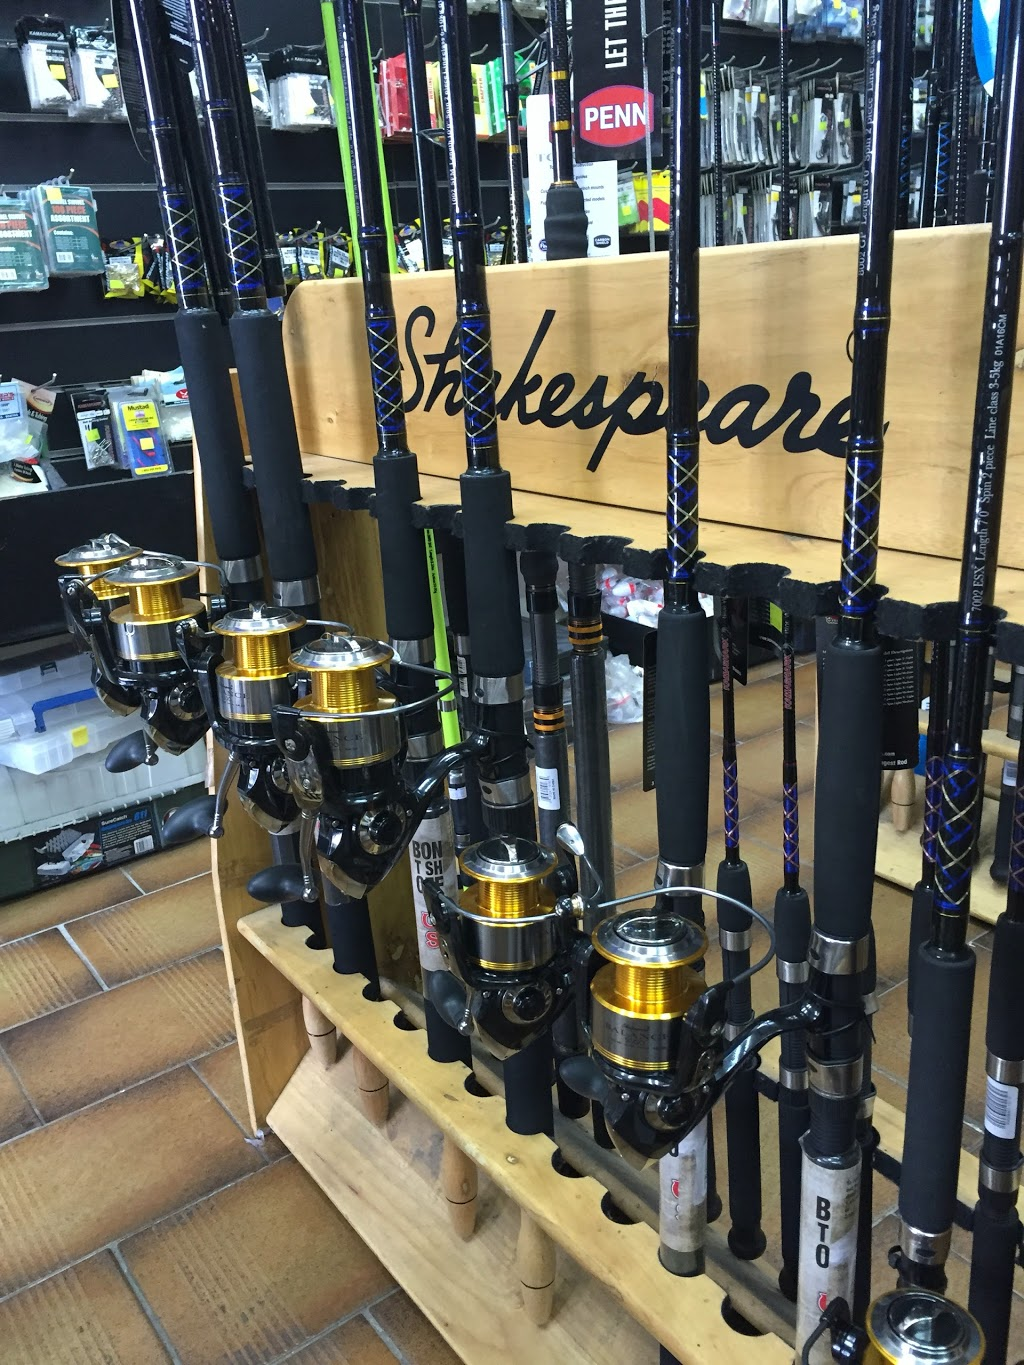 Extreme Fishing | store | 302/304 Woodville Rd, Guildford NSW 2161, Australia | 0287396340 OR +61 2 8739 6340